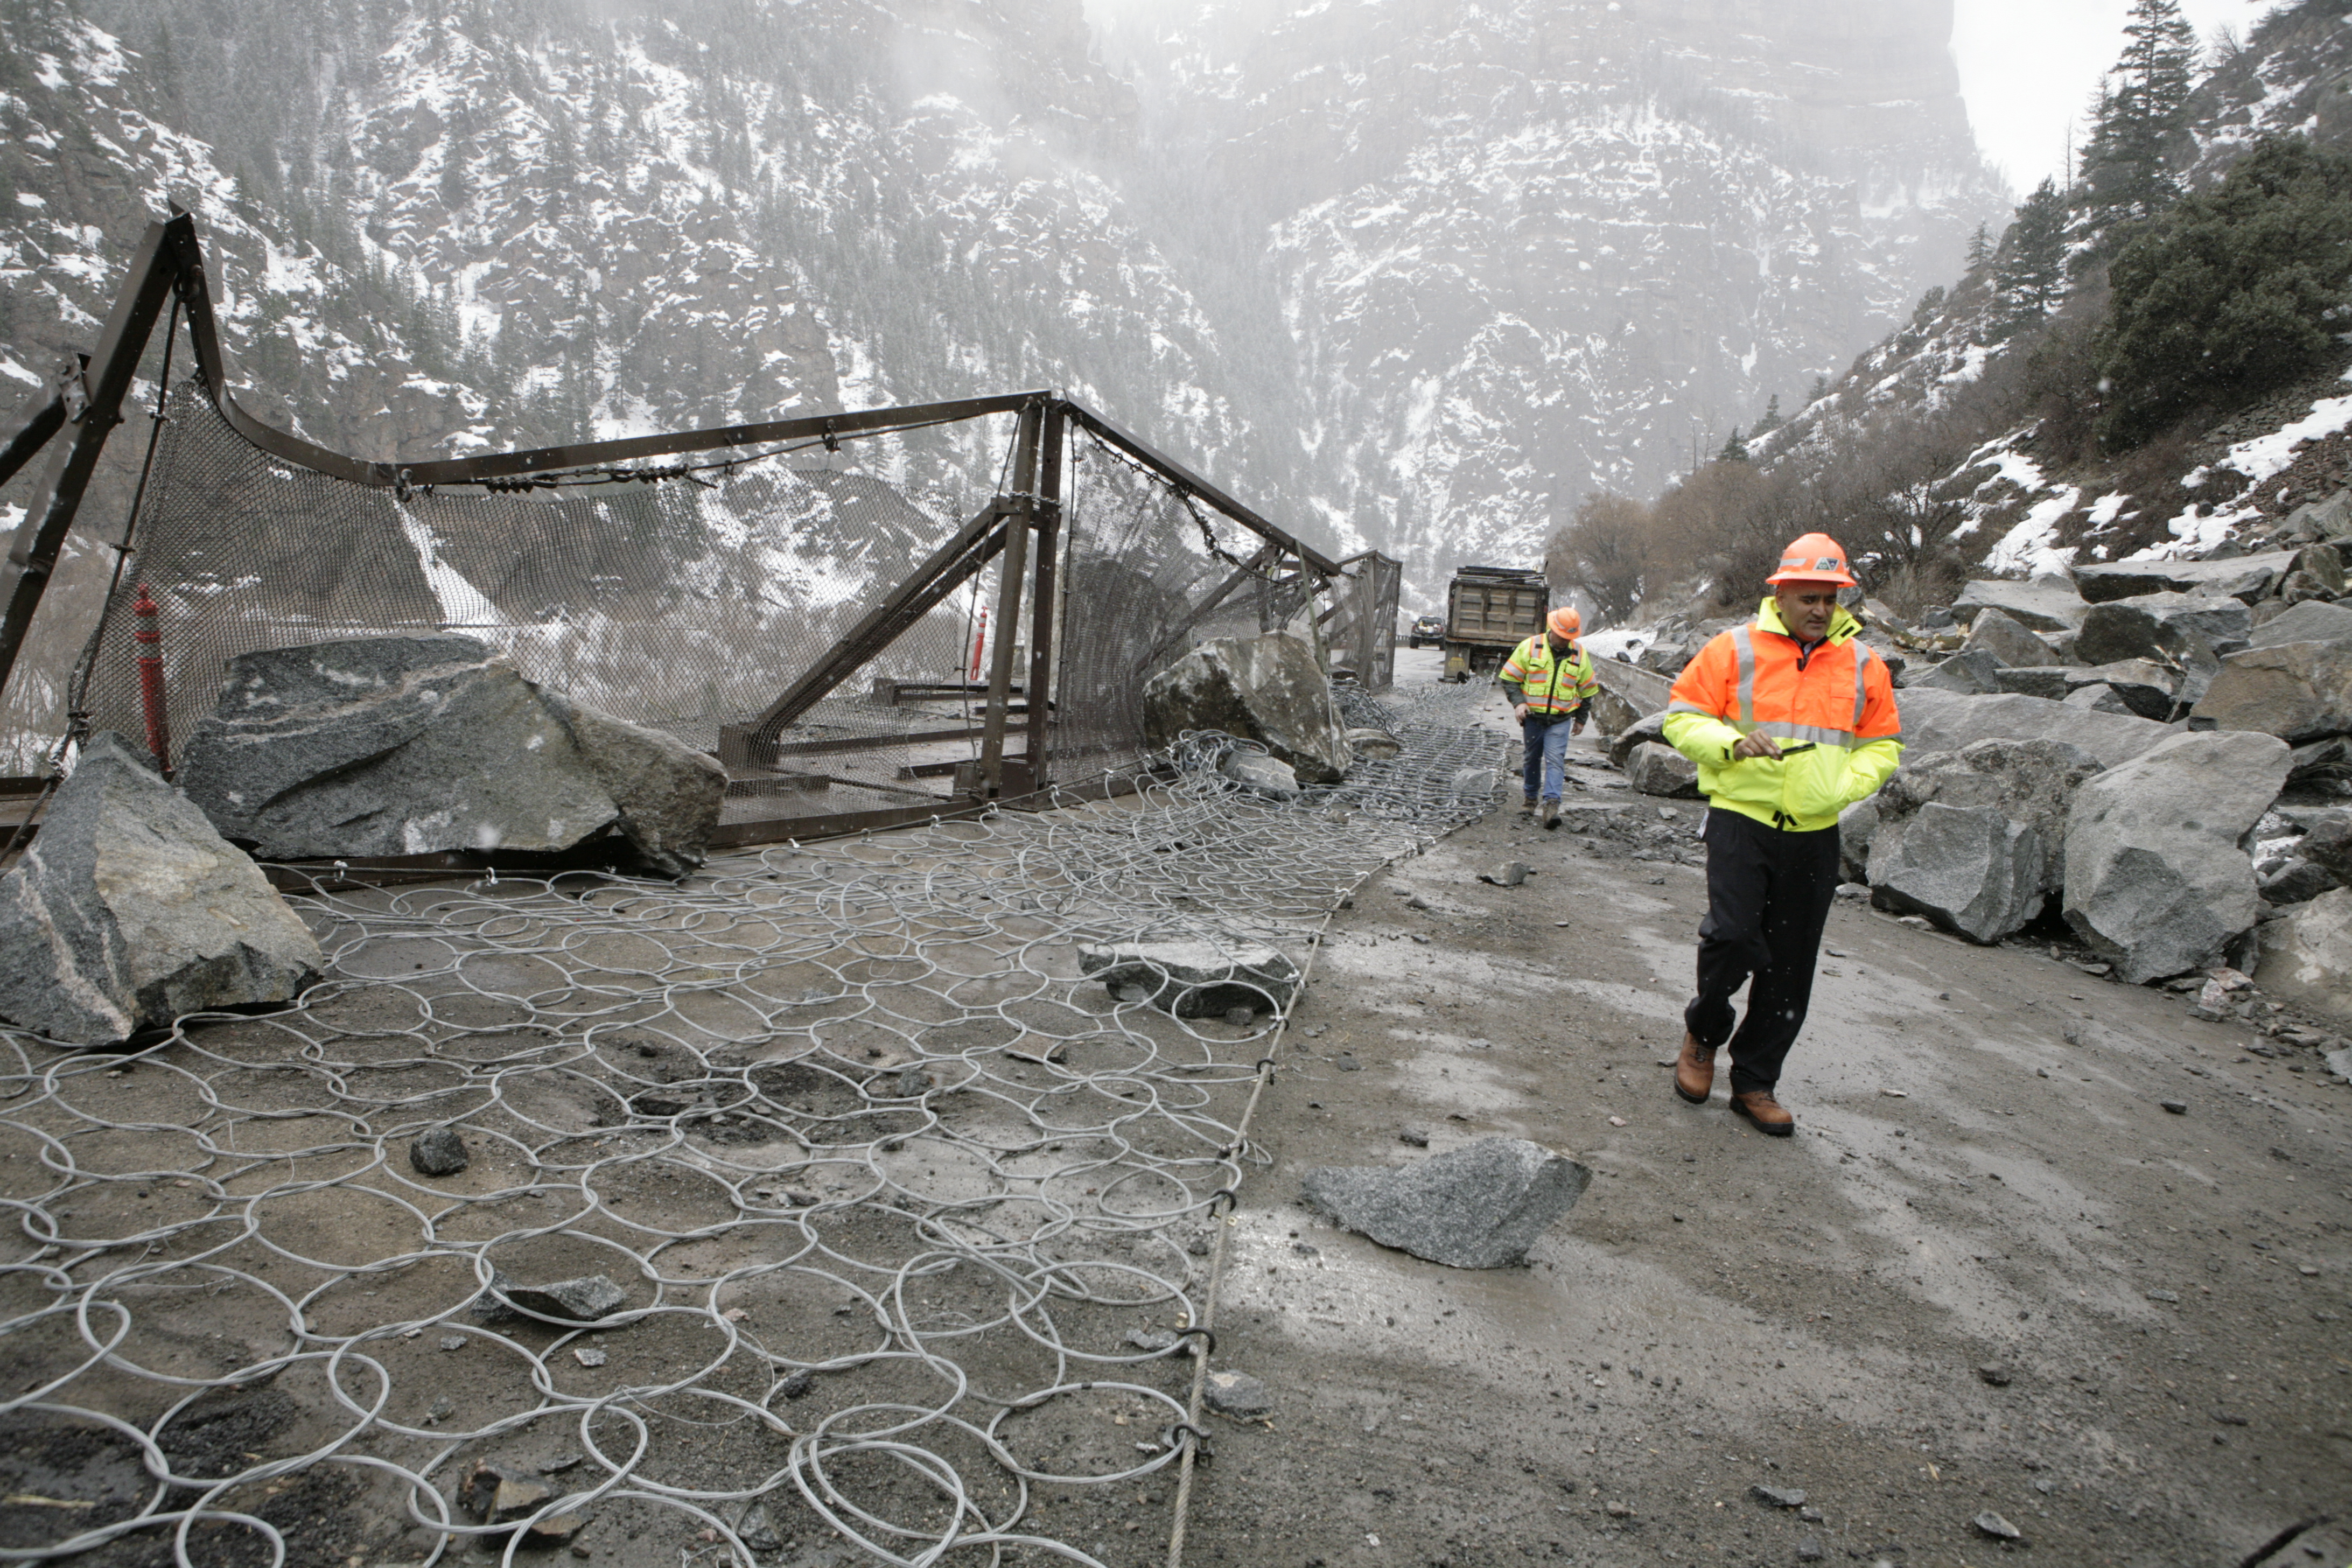 Photo: CDOT's Shailen Bhatt tours Glenwood Canyon